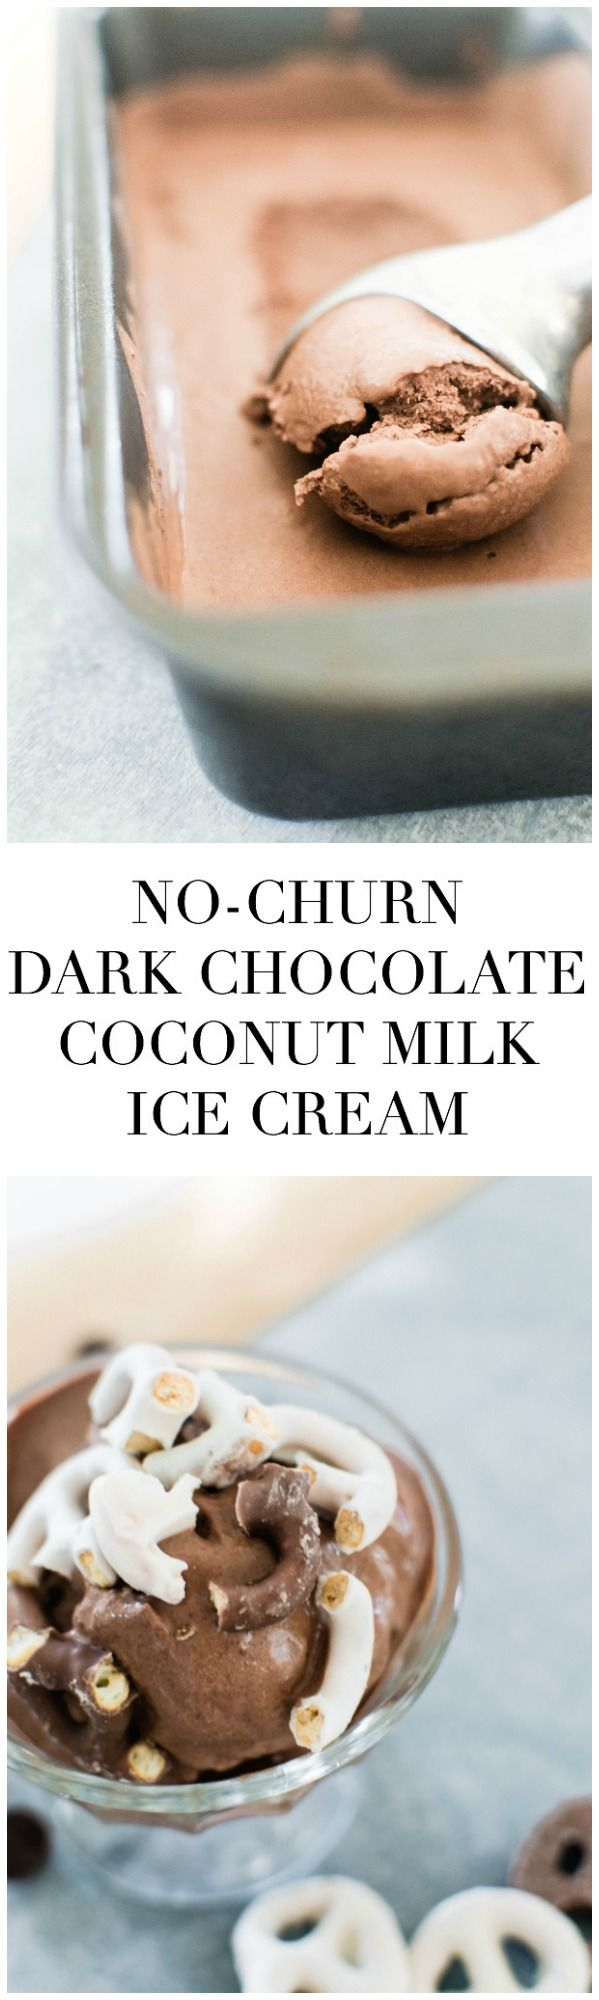 - Uses just 1 can of coconut milk - refrigerated, then separated.  8 oz chocolate, melted. (1/4 cup, each, of cocoa + brown sugar, maybe?)